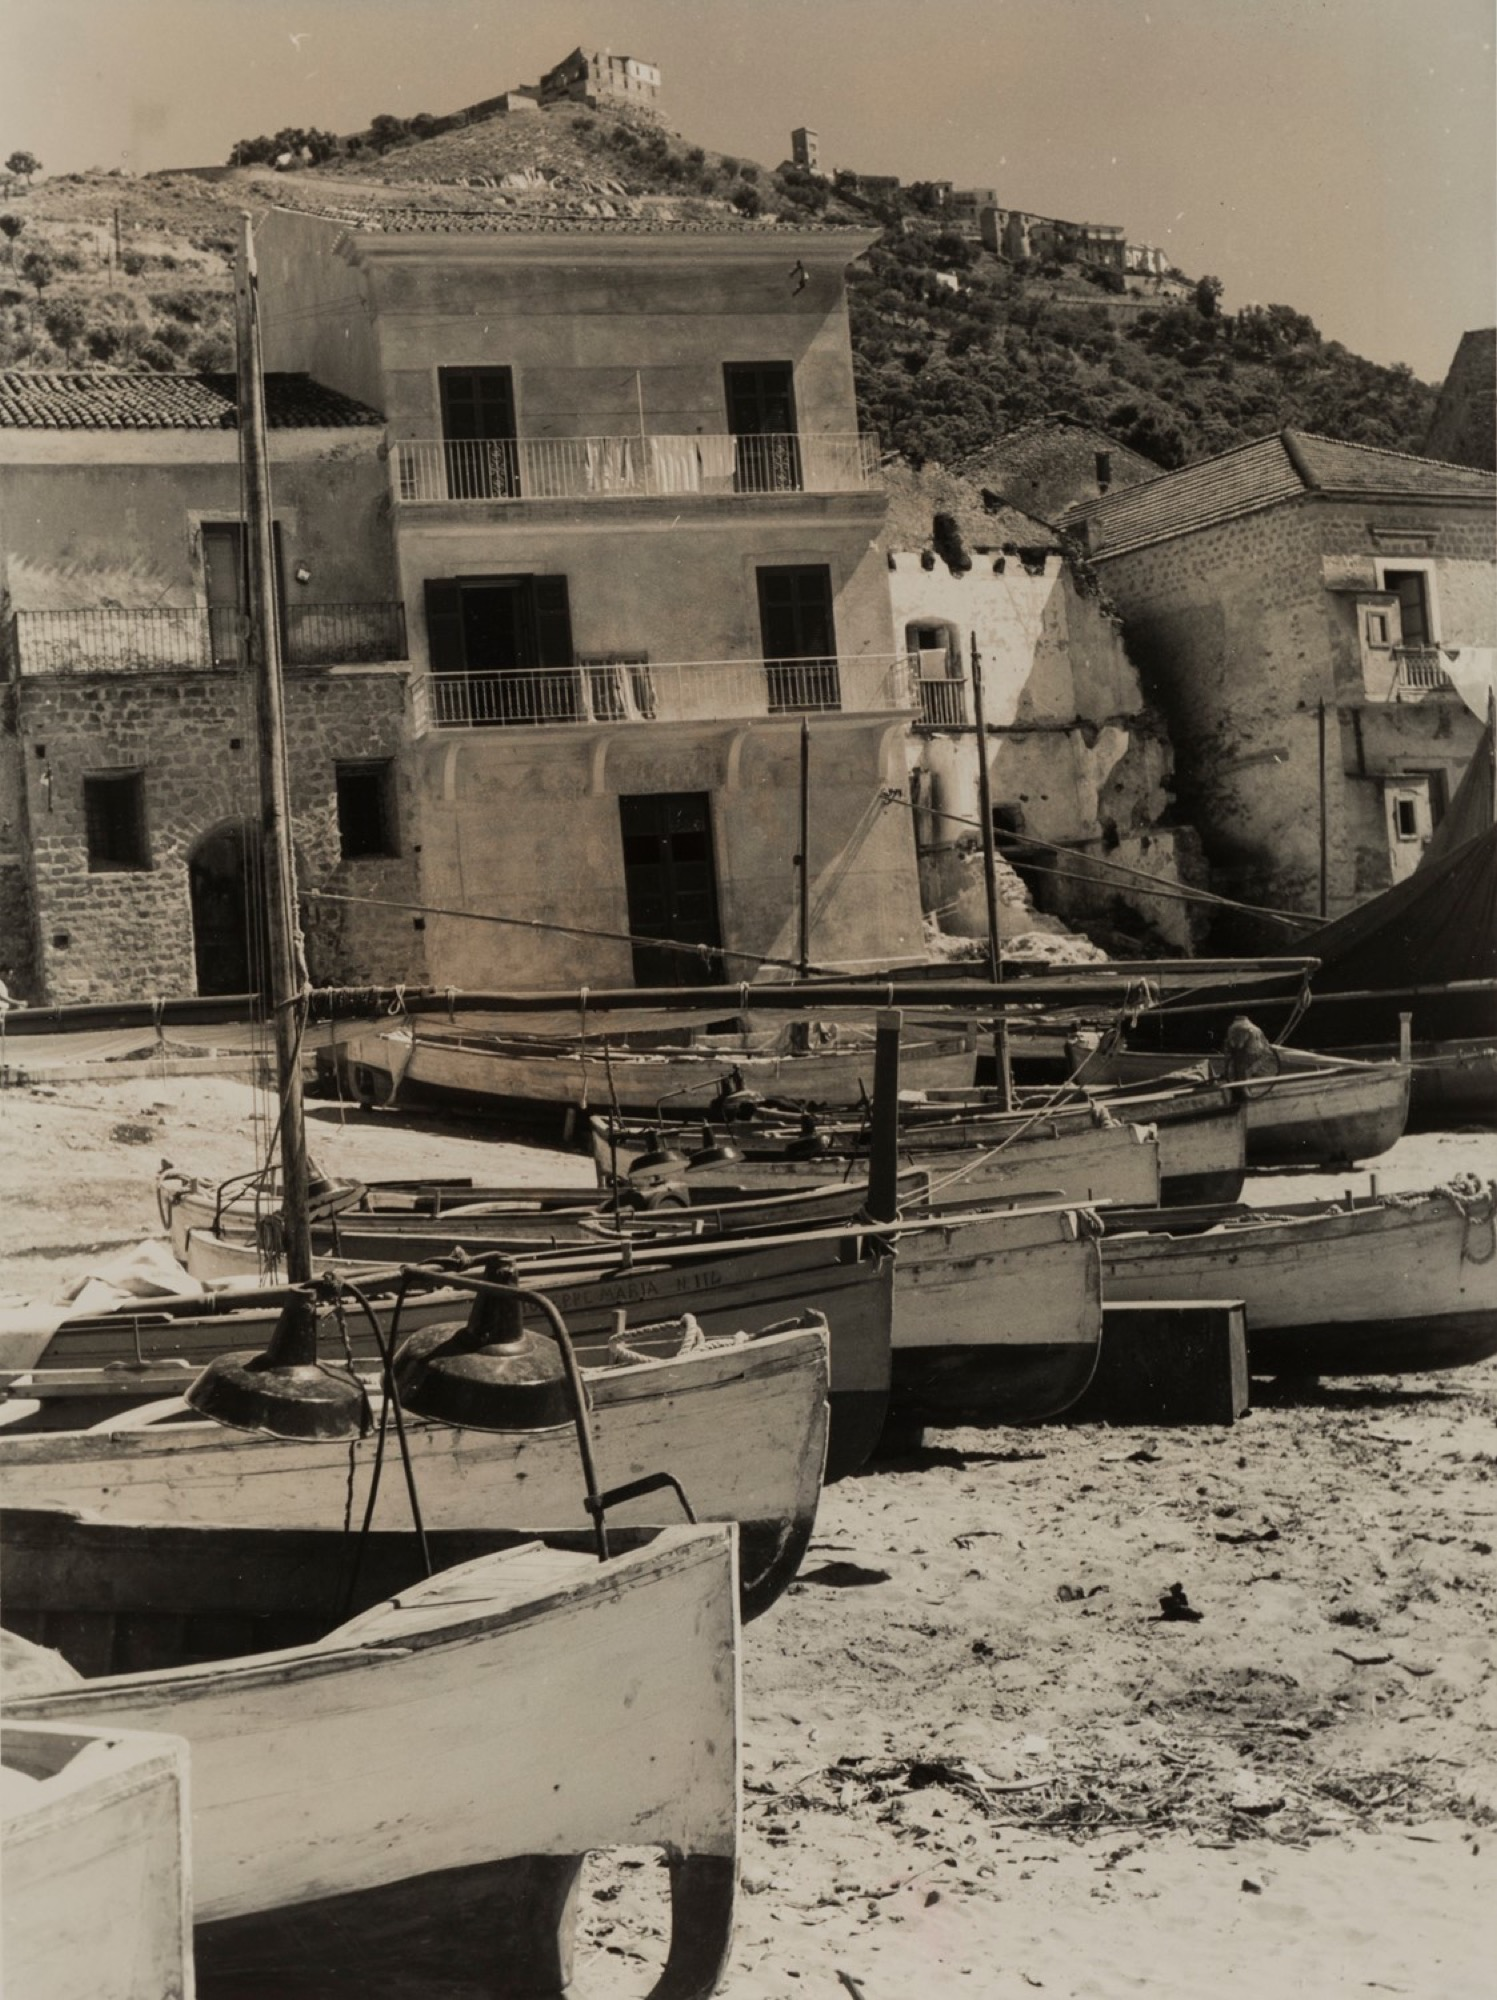 Giulio Parisio - Landscapes, years 1930/1940 - Eight vintage gelatin silver prints [...] - Image 5 of 9